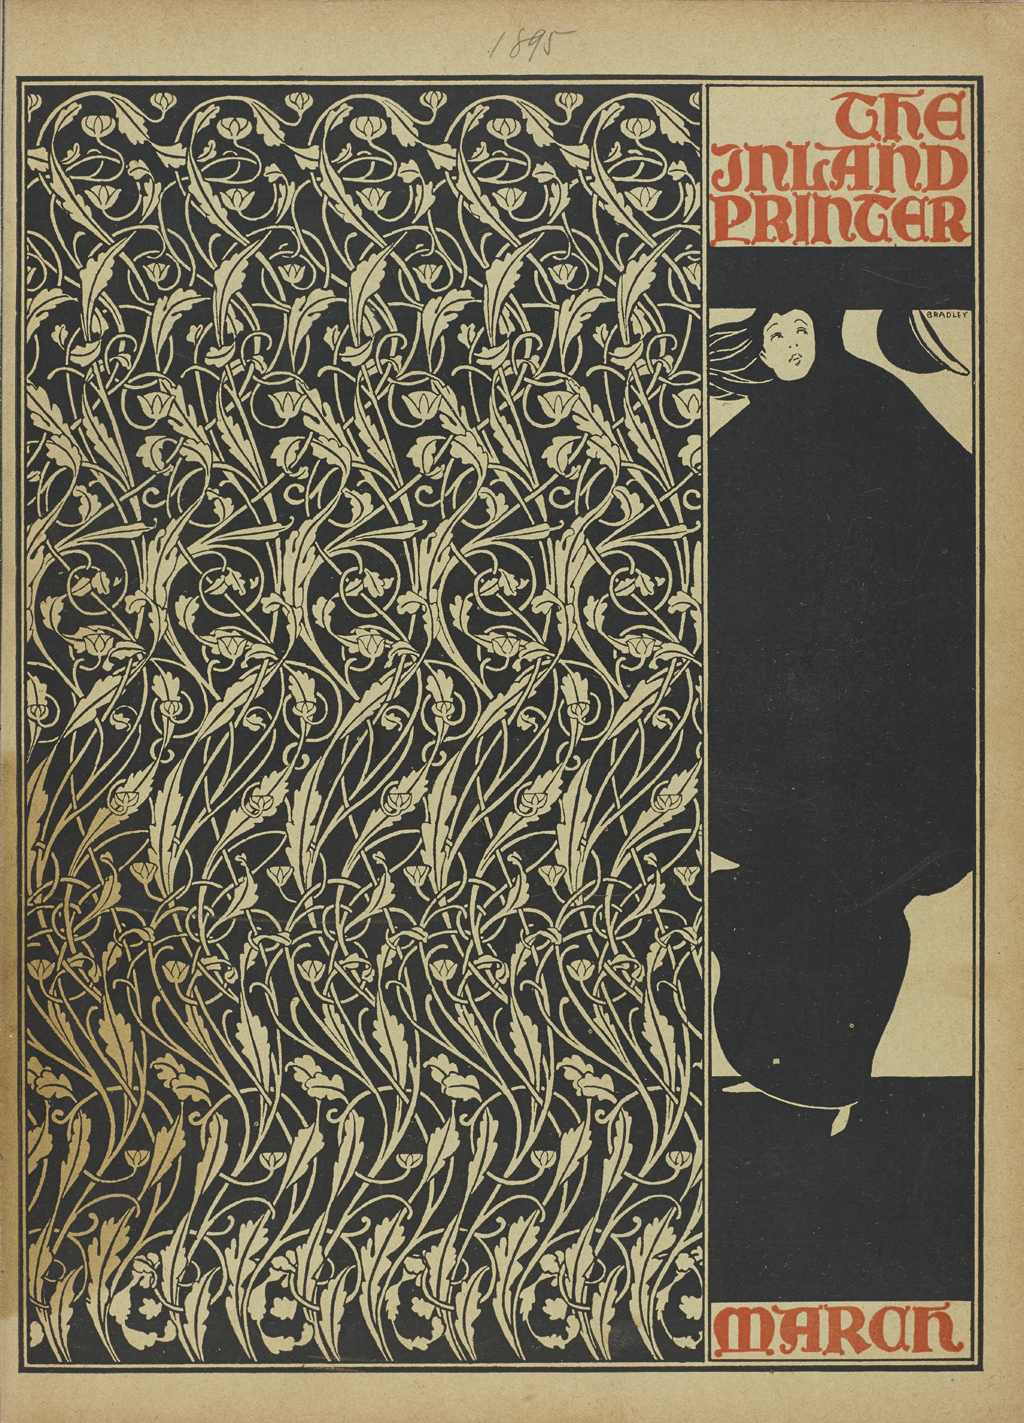 Cover of The Inland Printer (March 1895). Design by Will Bradley.